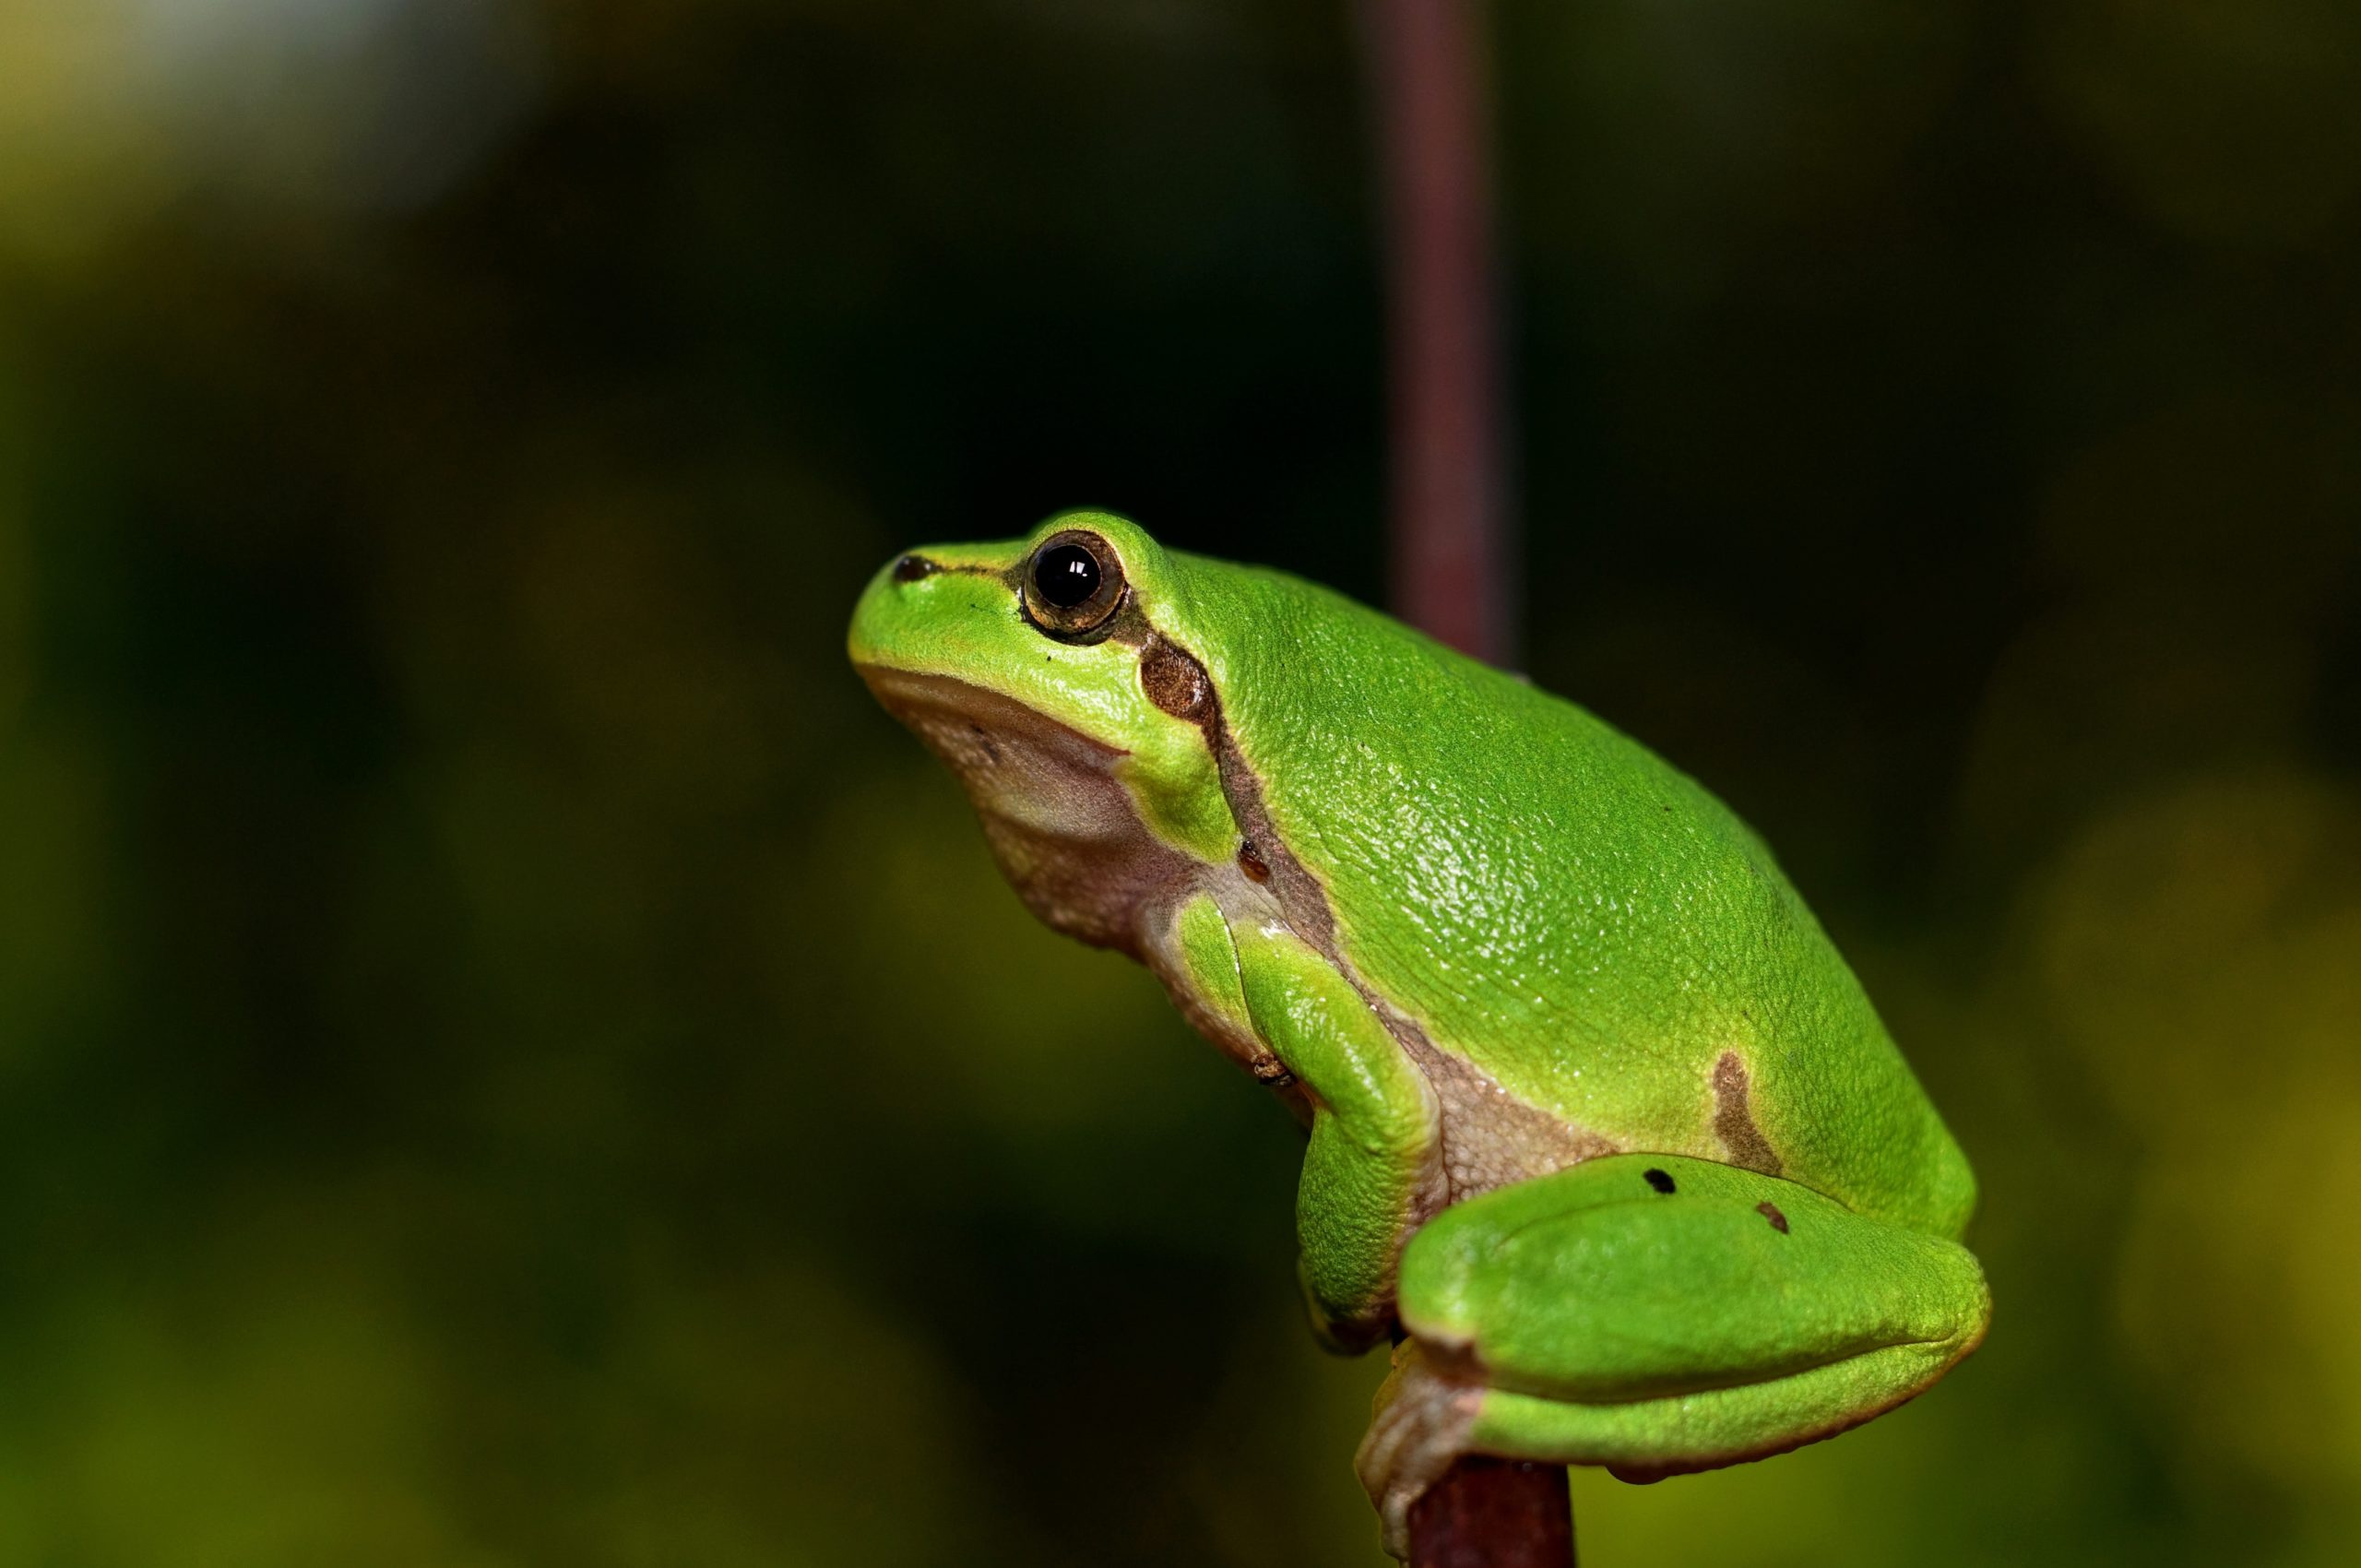 Frogs - The Leaping Amphibians